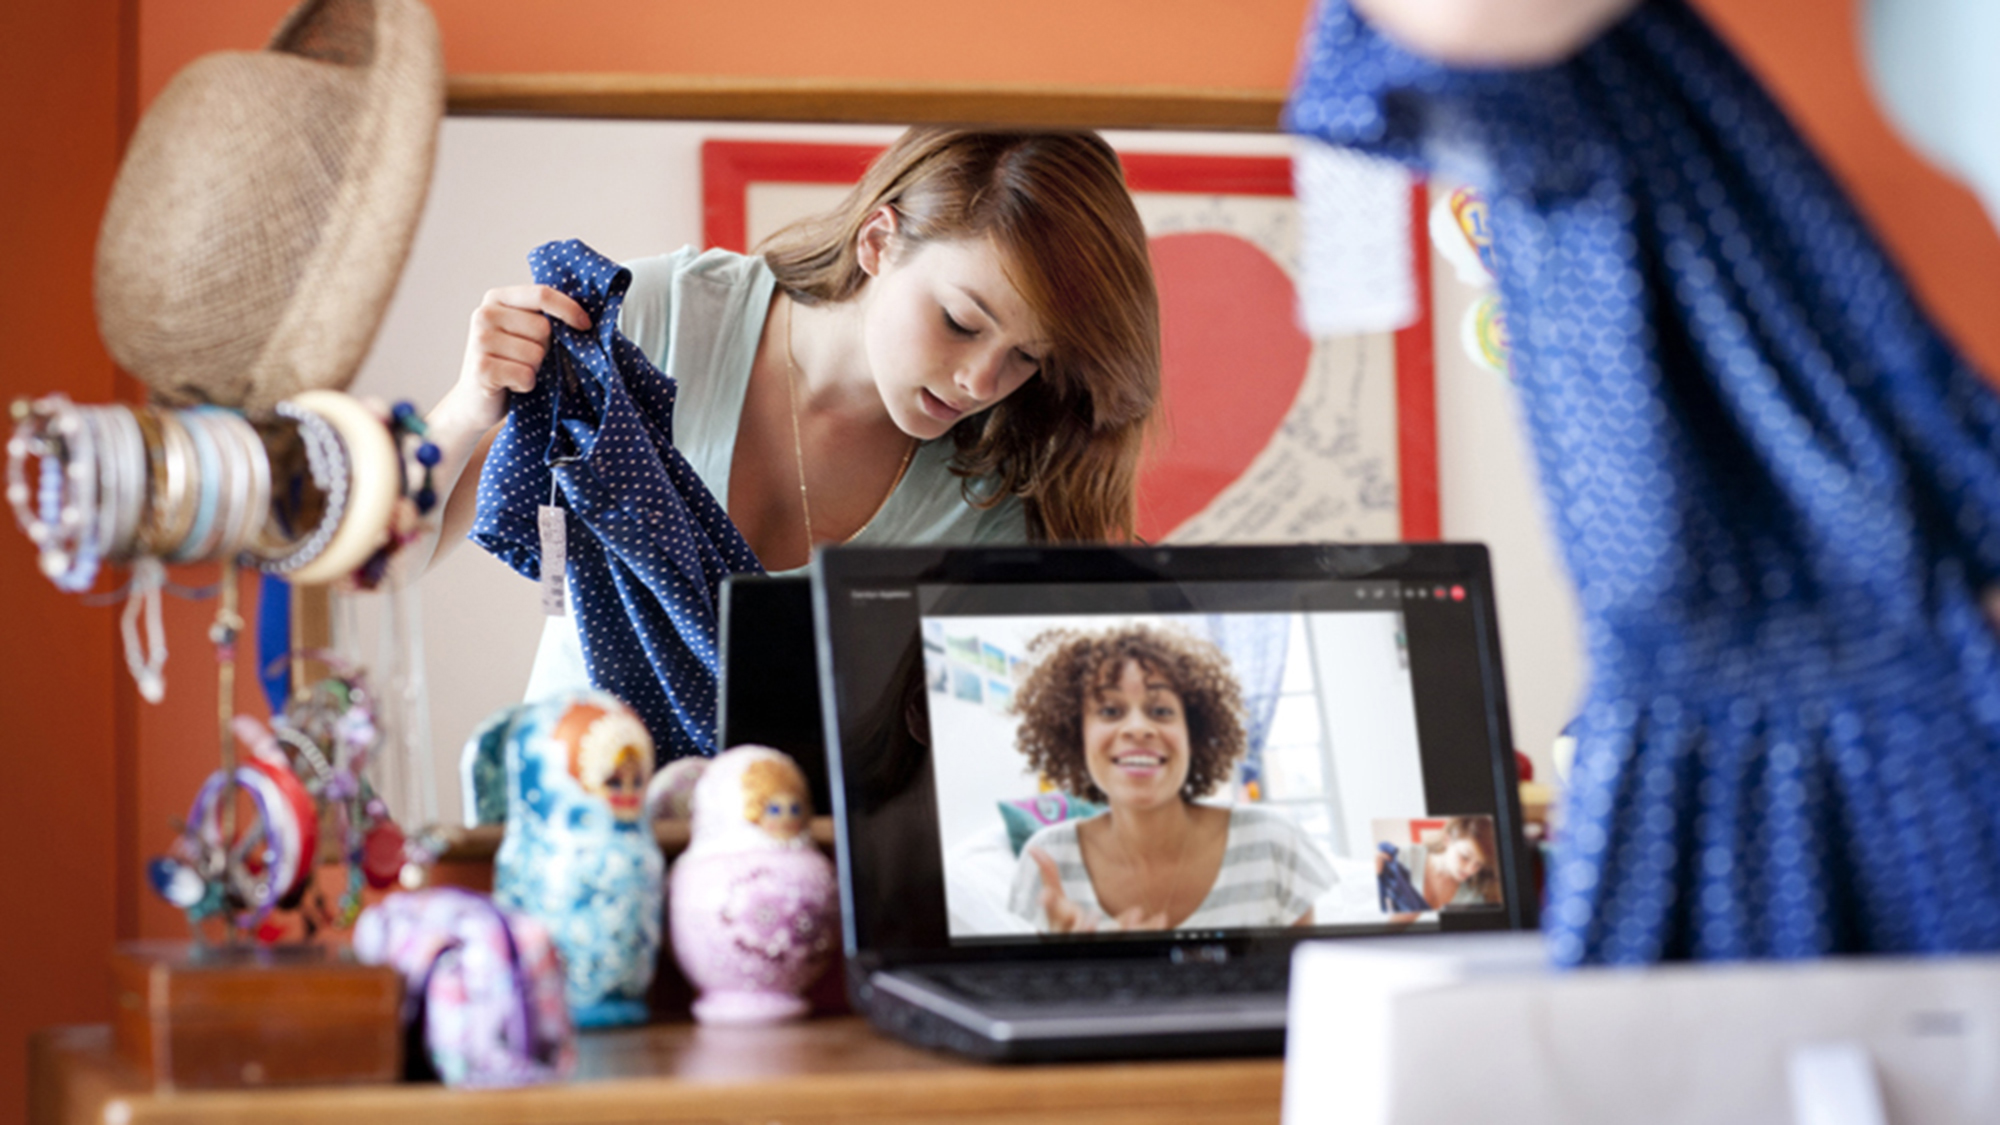 Best video chat apps: Skype